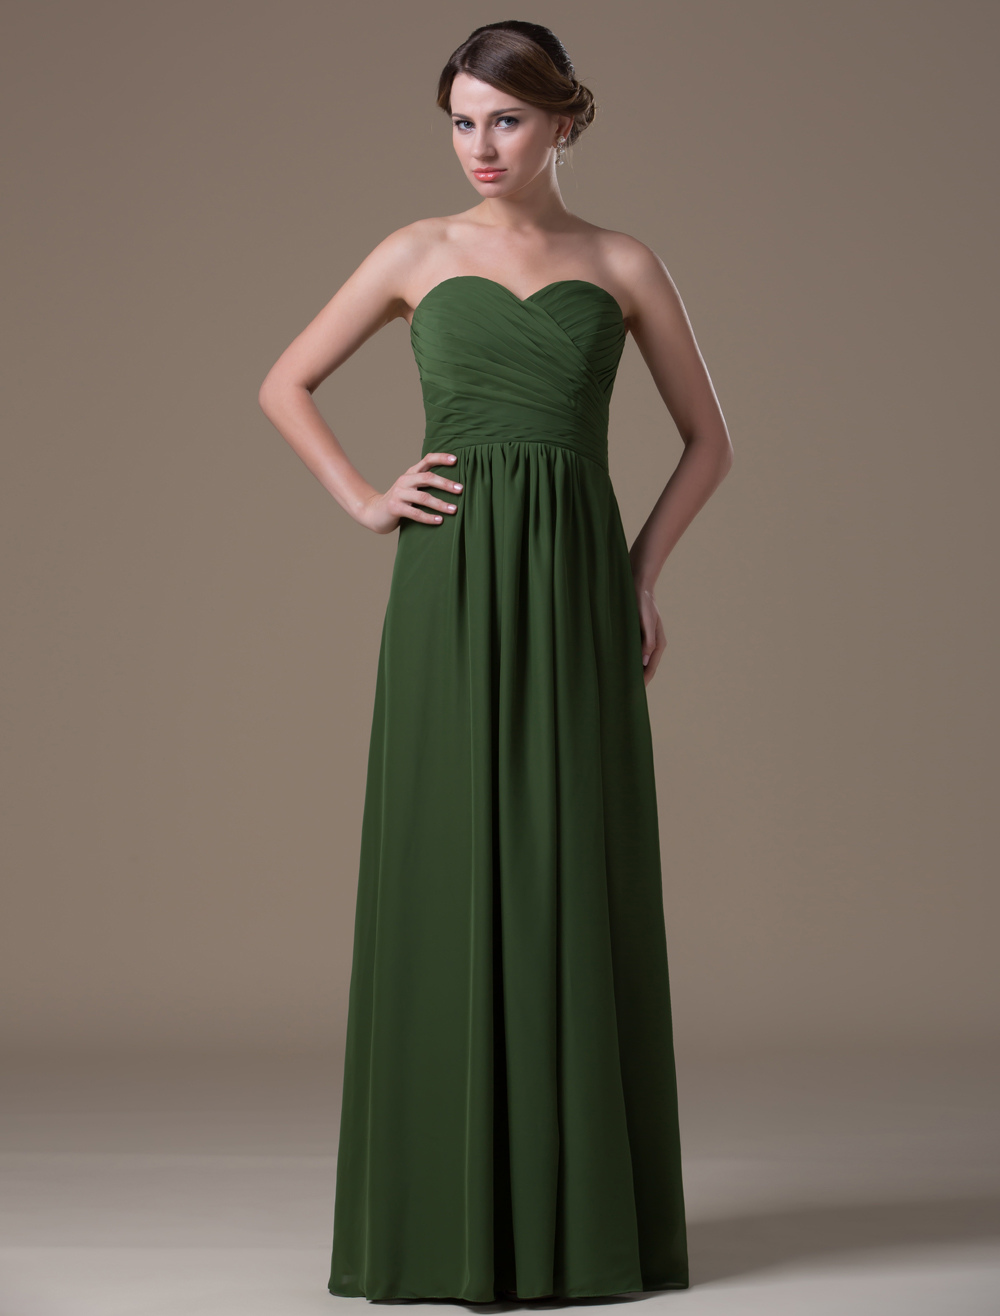 A line green chiffon maternity bridesmaid dress with empire waist a line green chiffon maternity bridesmaid dress with empire waist milanoo ombrellifo Gallery